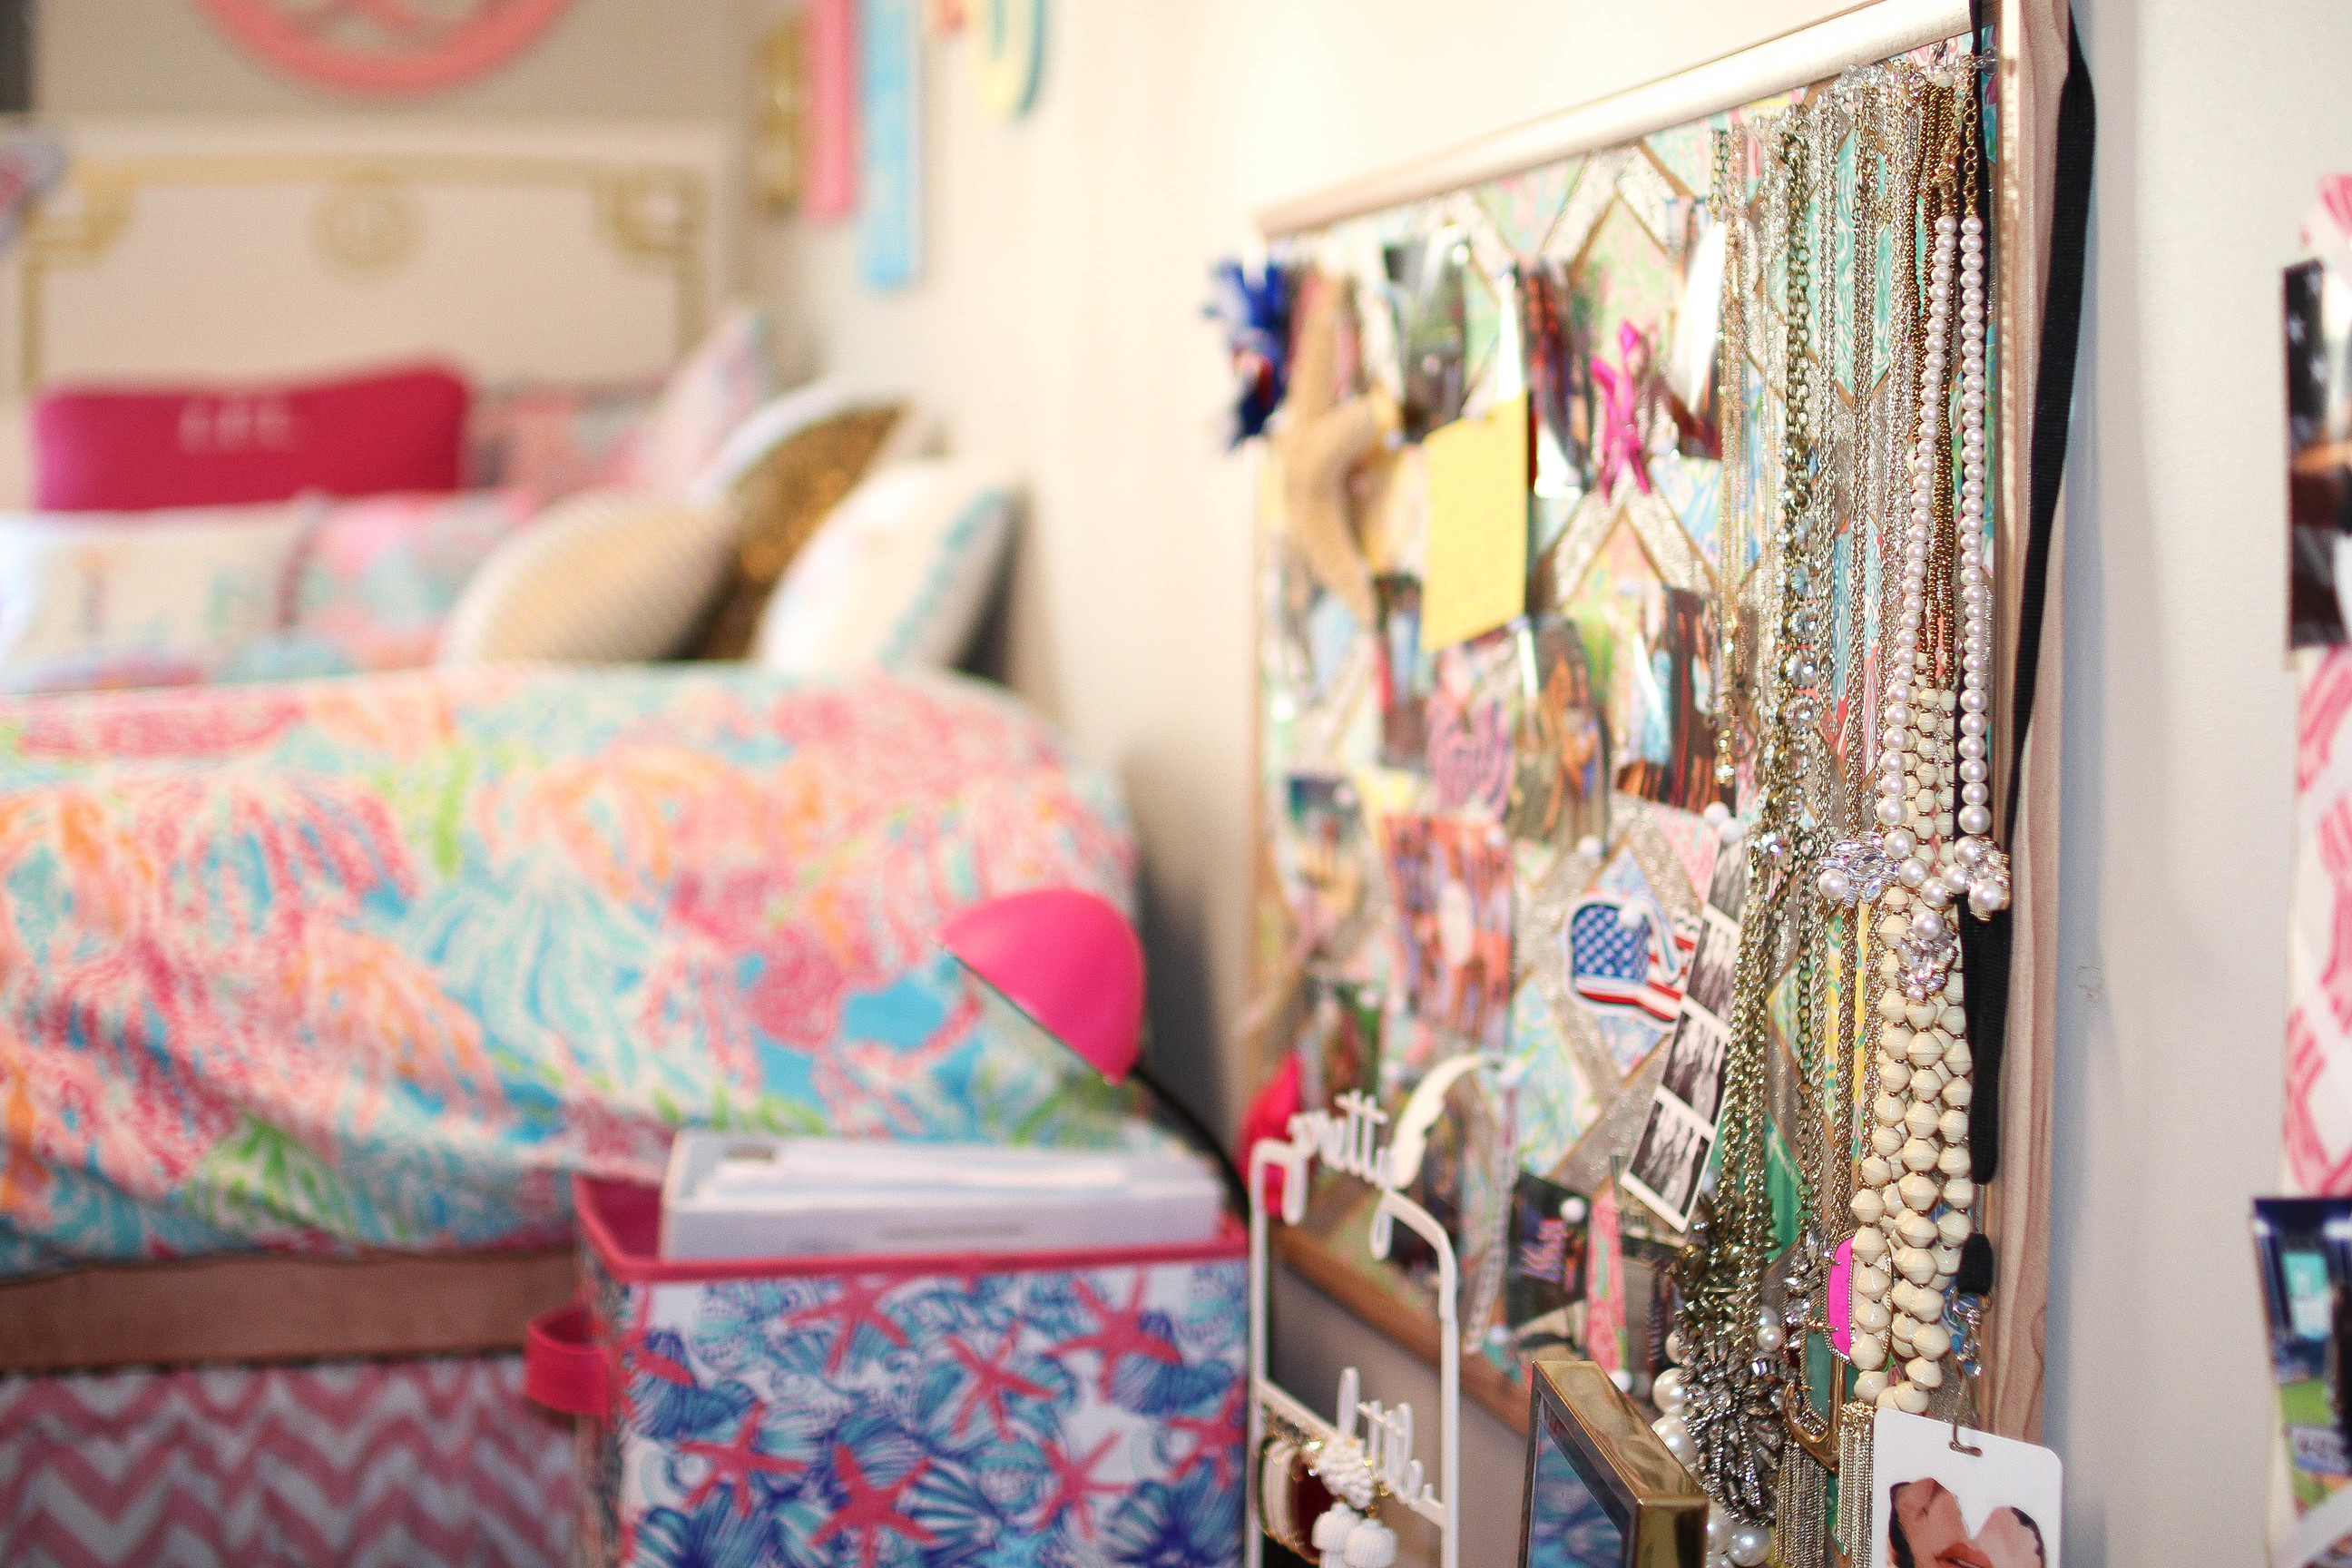 MY FRESHMAN YEAR DORM ROOM | + Giveaway